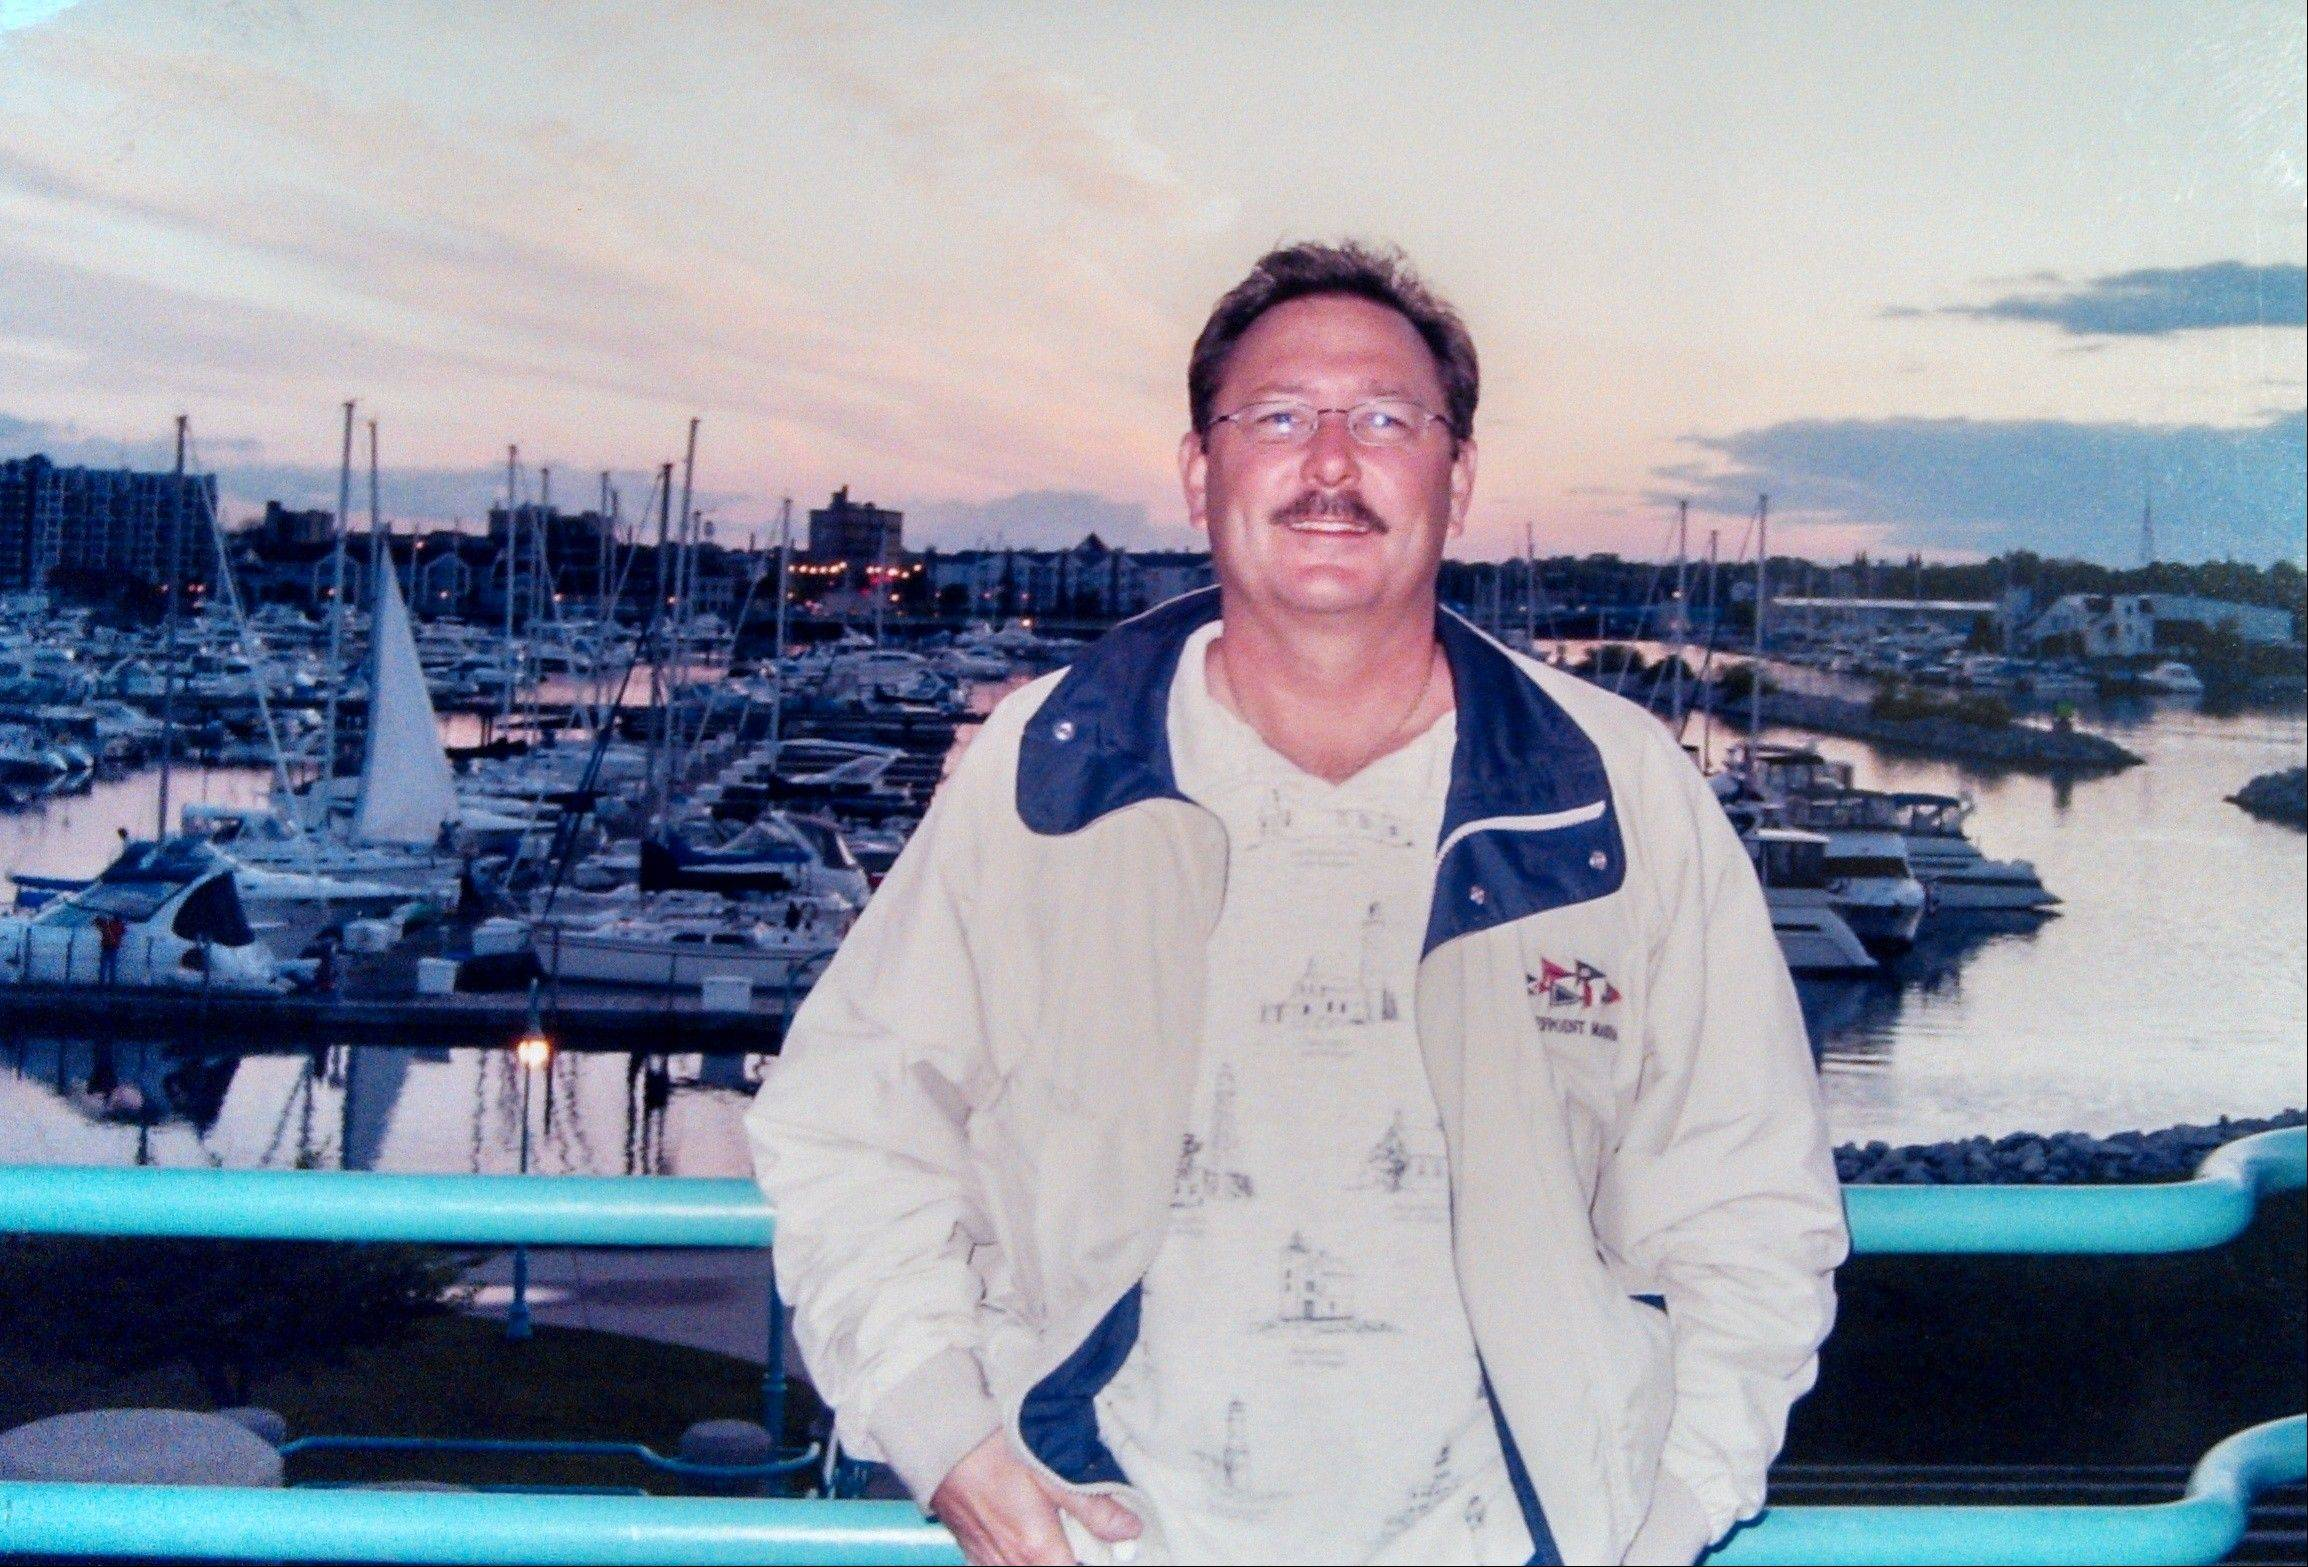 Richard Franzese, of Hoffman Estates, drowned at a Wisconsin marina over the weekend. He is being remembered by family members as a selfless, caring person who once saved another man from drowning.